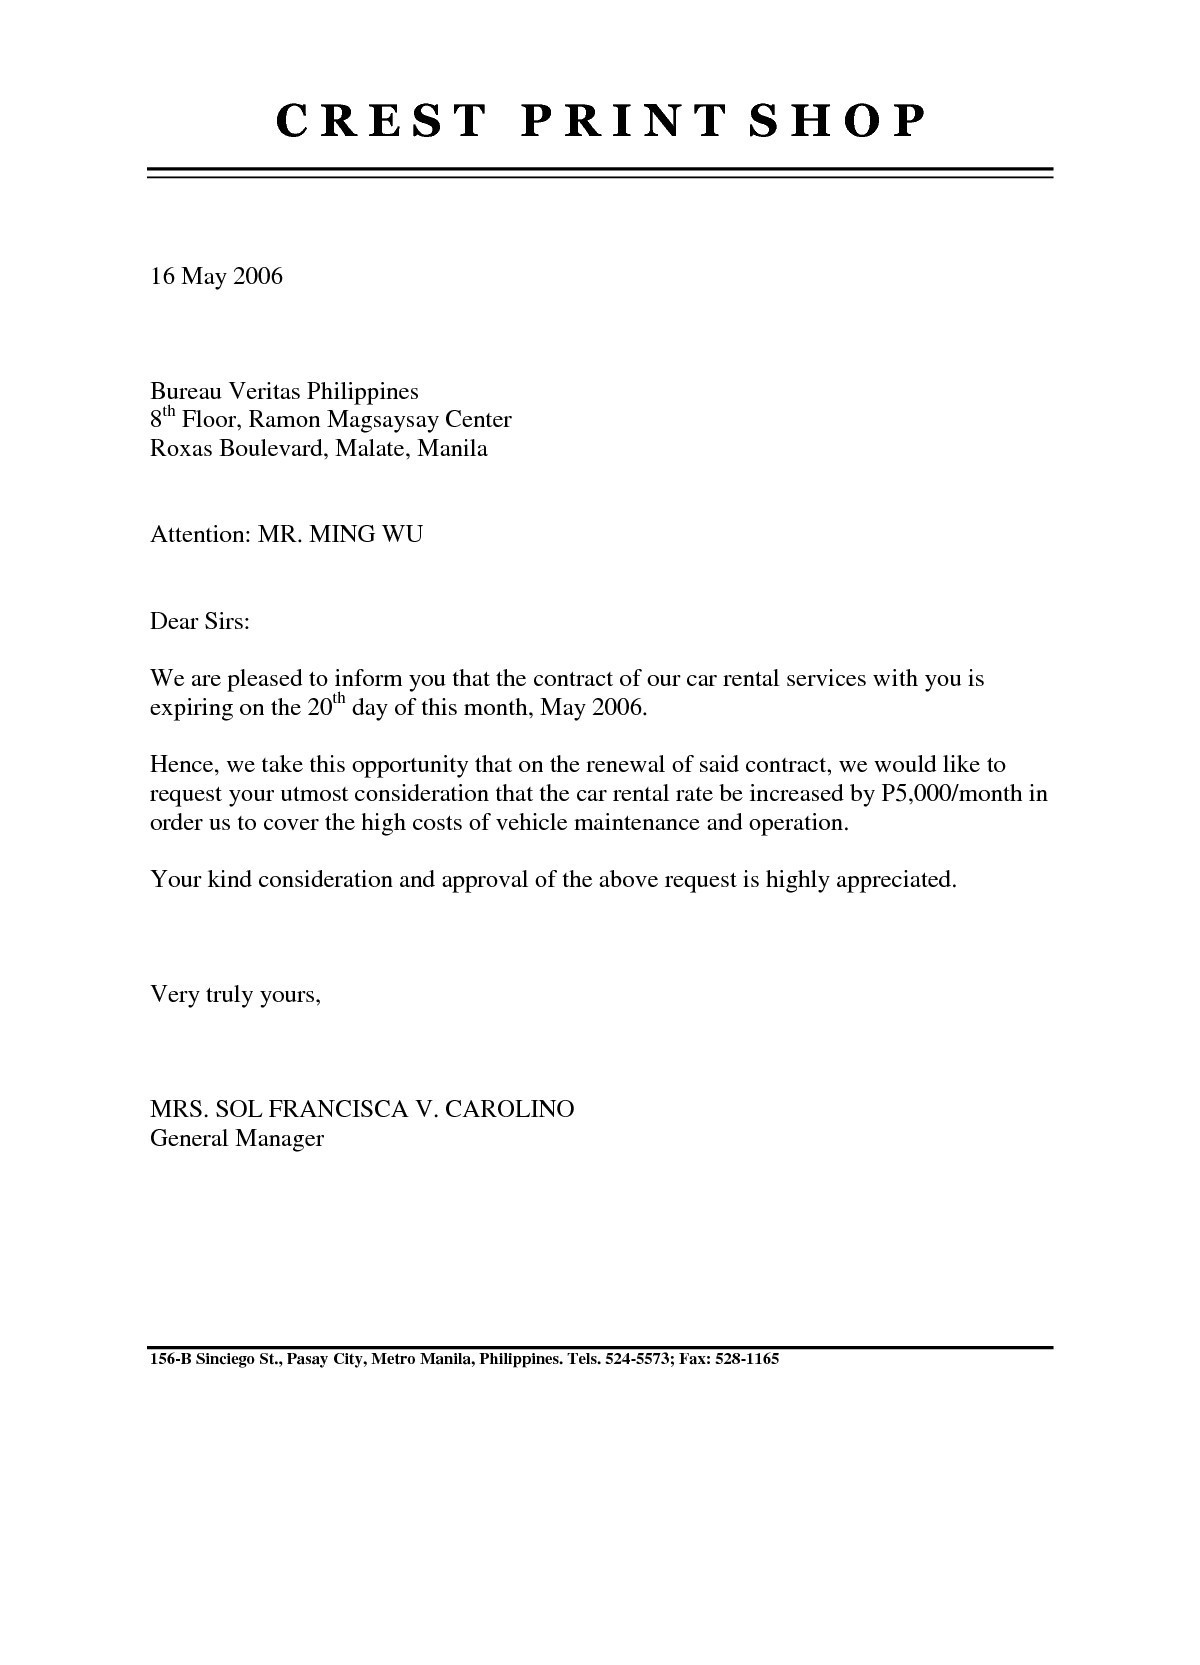 Rent Letter Template - Tenancy Agreement Renewal Template